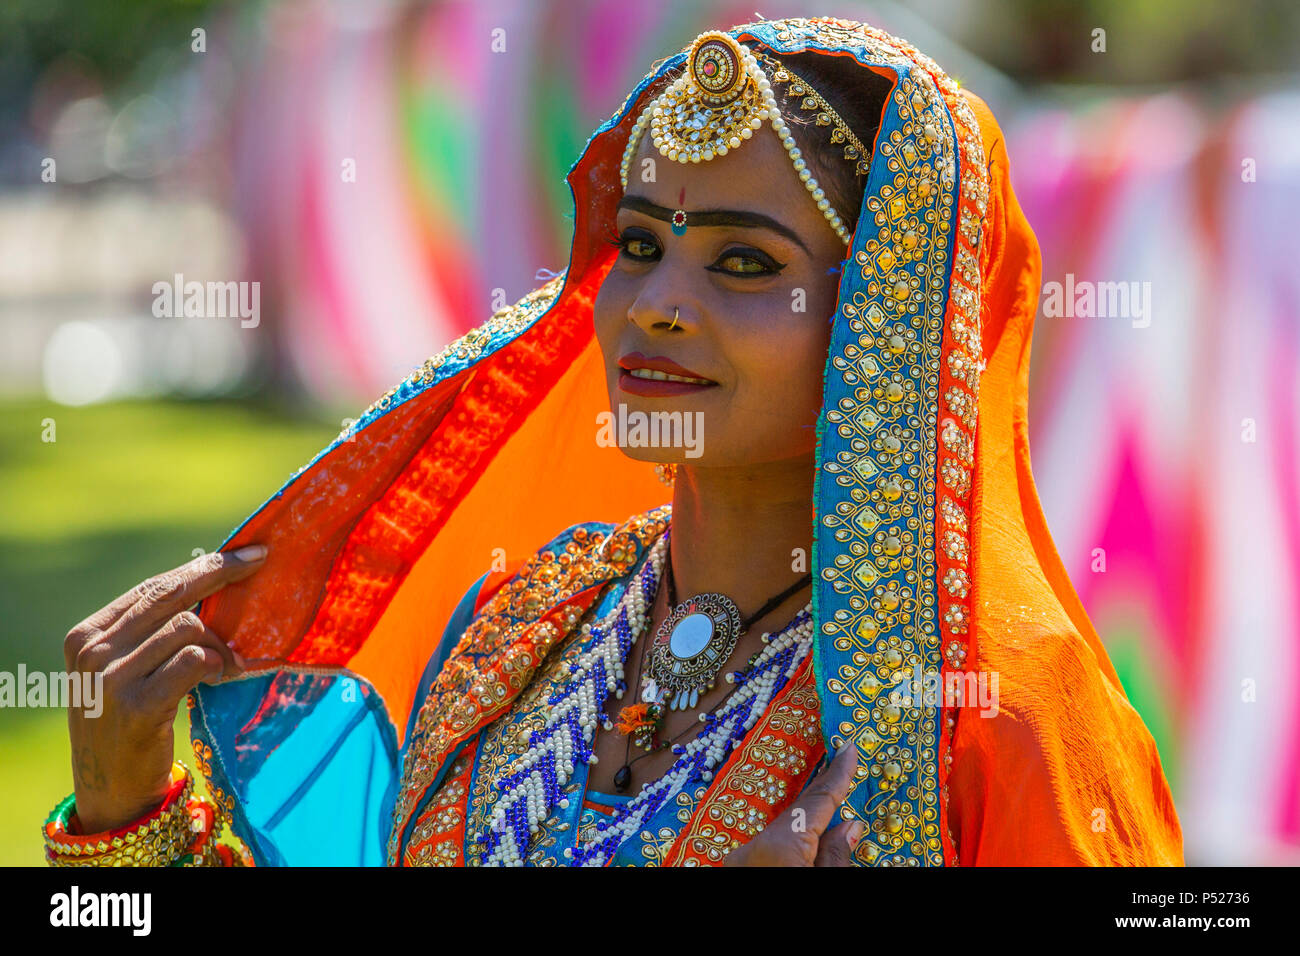 Glasgow, UK. 24th June, 2018. On a sunny summers day, thousands turned out to the annual Glasgow Mela held in Kelvingrove Park to enjoy a day of celebration of all aspects of Asian culture. There were many Asian bands and dance troops including the RAJASTAN HERITAGE BRASS BAND on their second appearance at the Mela and the GABHRU PANJAB DE Asian dance troop from Birmingham on their first appearance Credit: Findlay/Alamy Live News Stock Photo